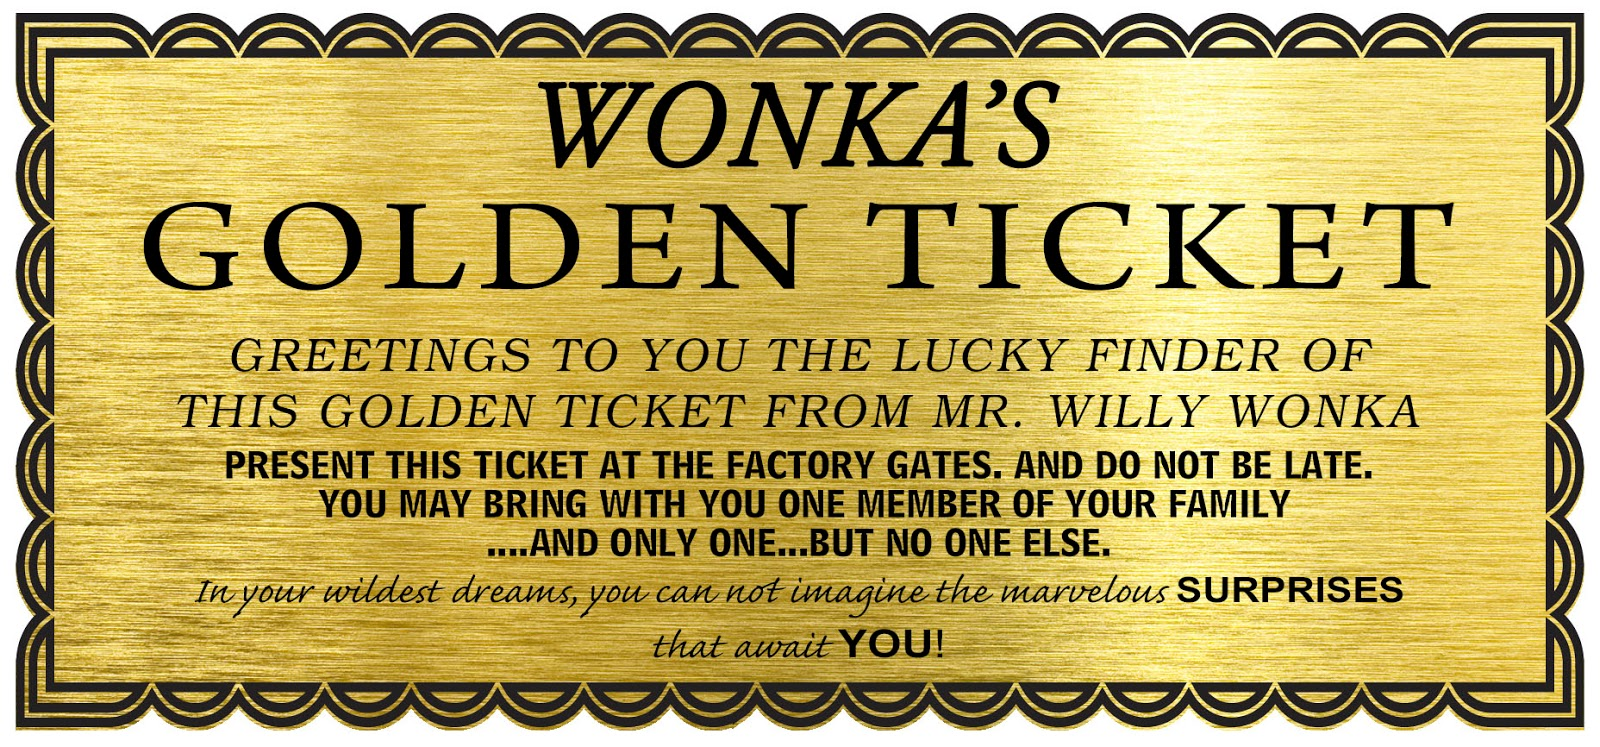 Willie wonka golden ticket (credit to https://icandywrap.com/product/193A2E19A4CD4D02B96C4D26462751D7/willy-wonka-golden-tickets-movie-replica.html)